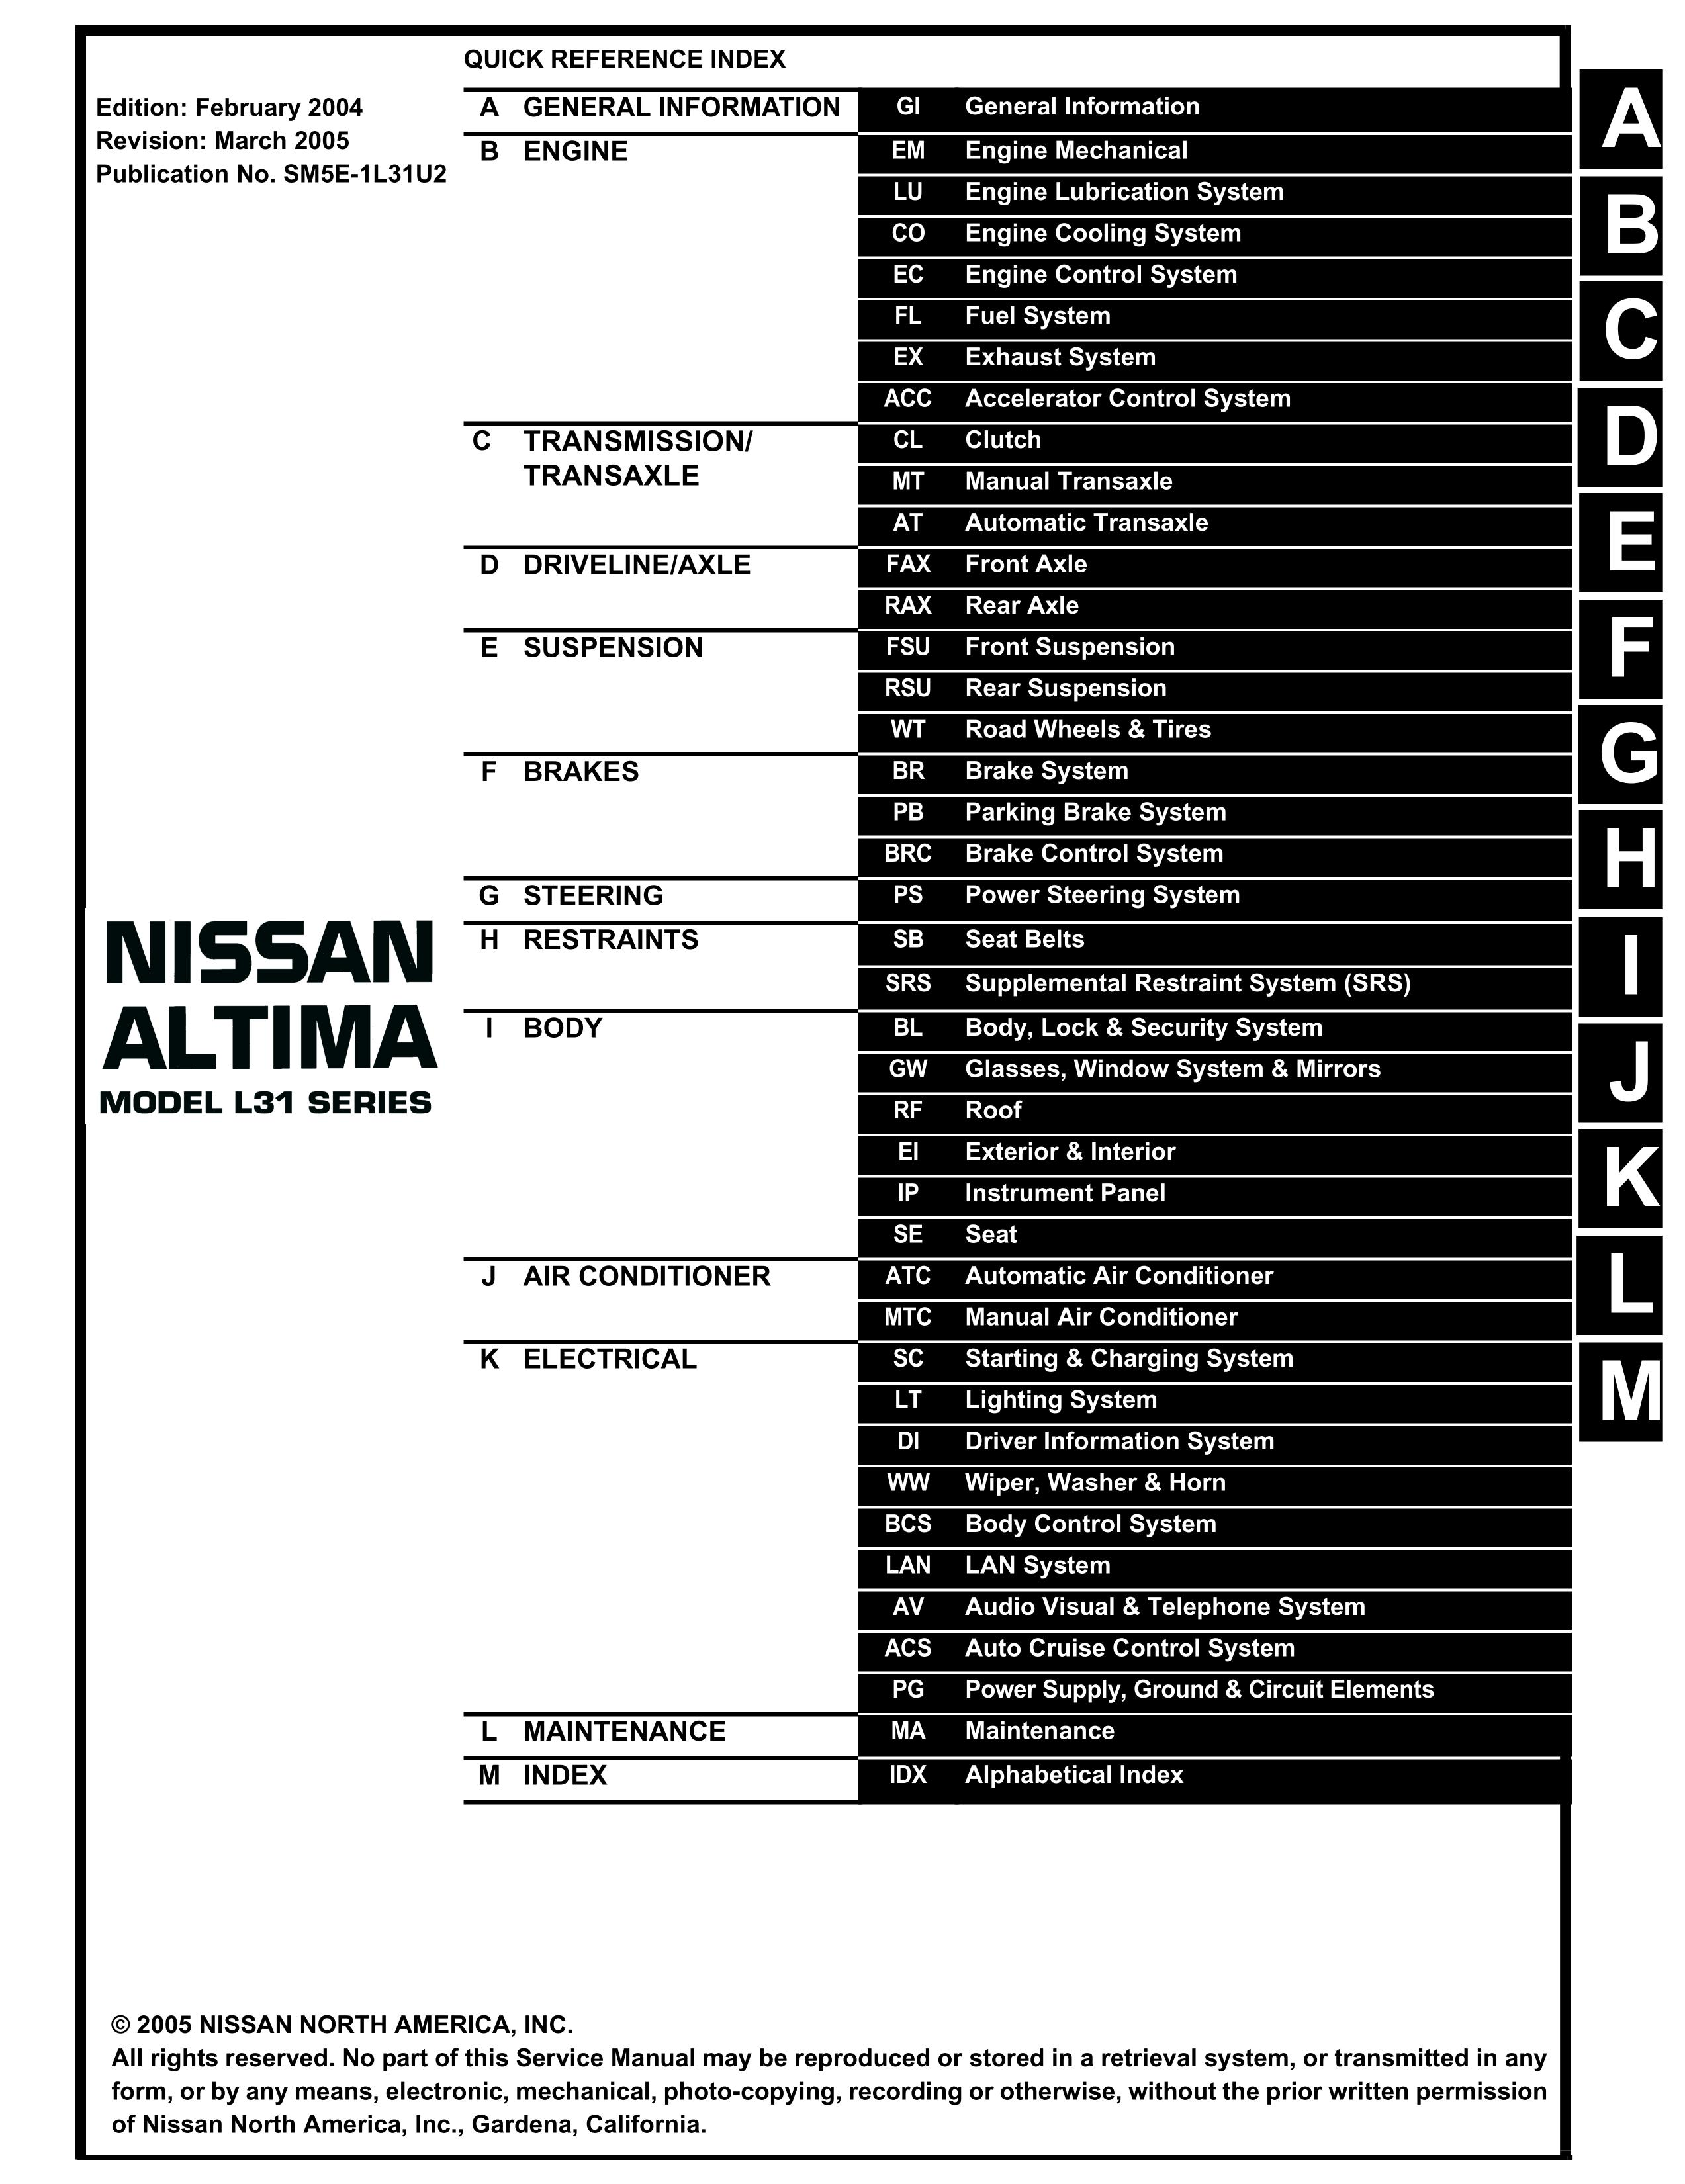 Ford Power Mirror Wiring Diagram likewise Replace Low Beam Headlight Bulb 2003 Nissan Maxima together with Index as well P 0900c152800994d1 also 1998 Nissan Altima Need Torque Specs Tightening Sequence Head Bolts Timing Chain. on 2003 altima diagram